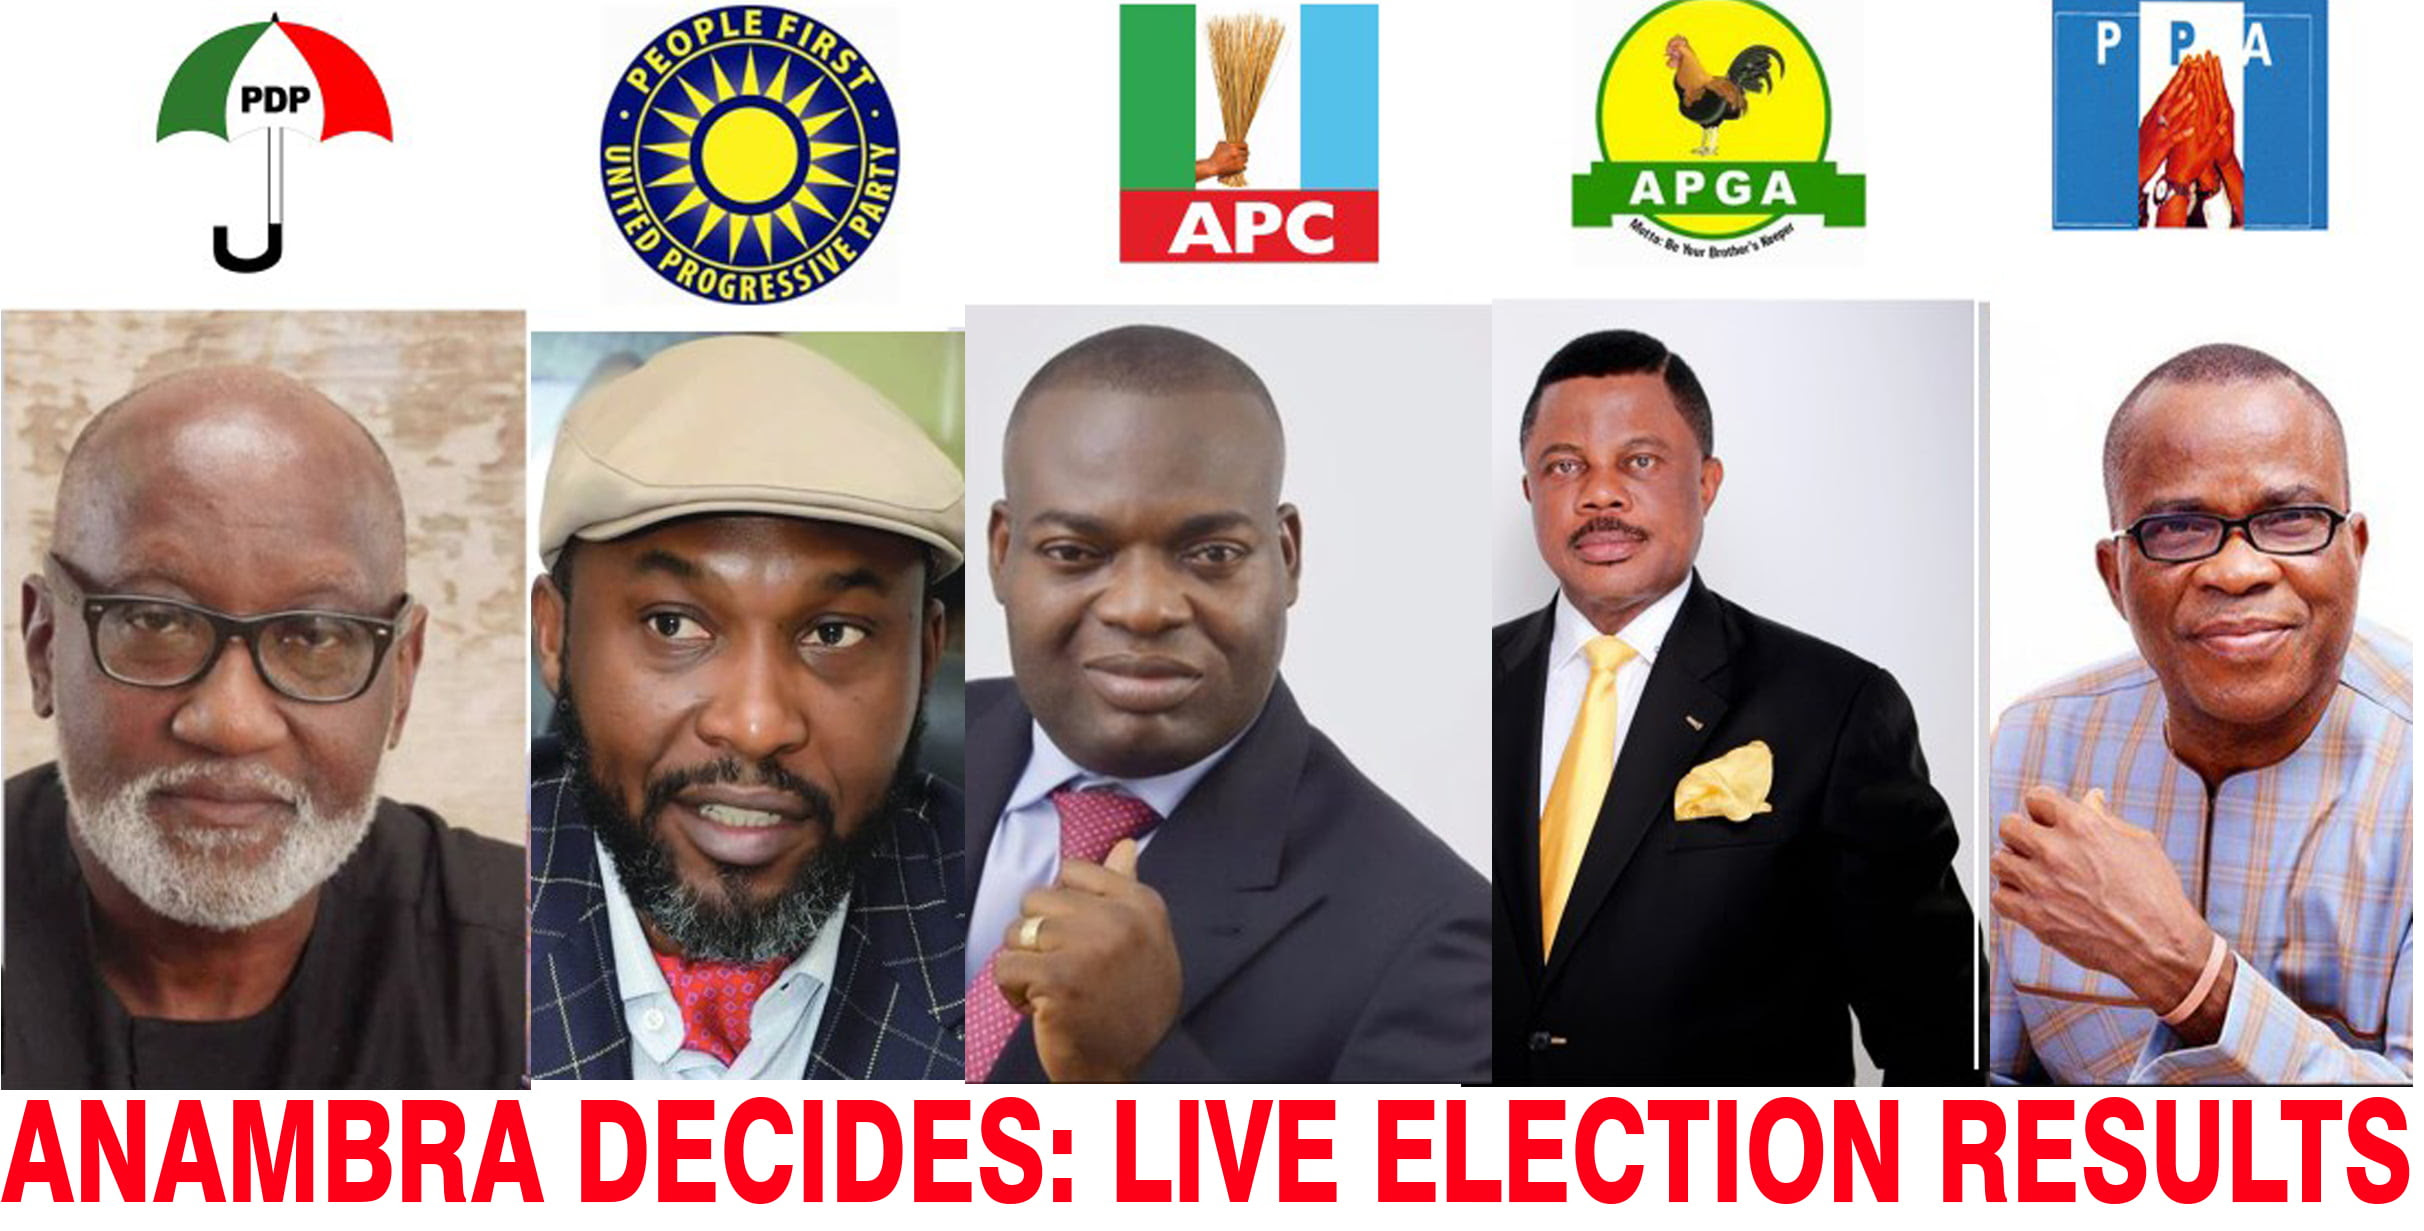 Anambra election: How candidates fared (Full score)